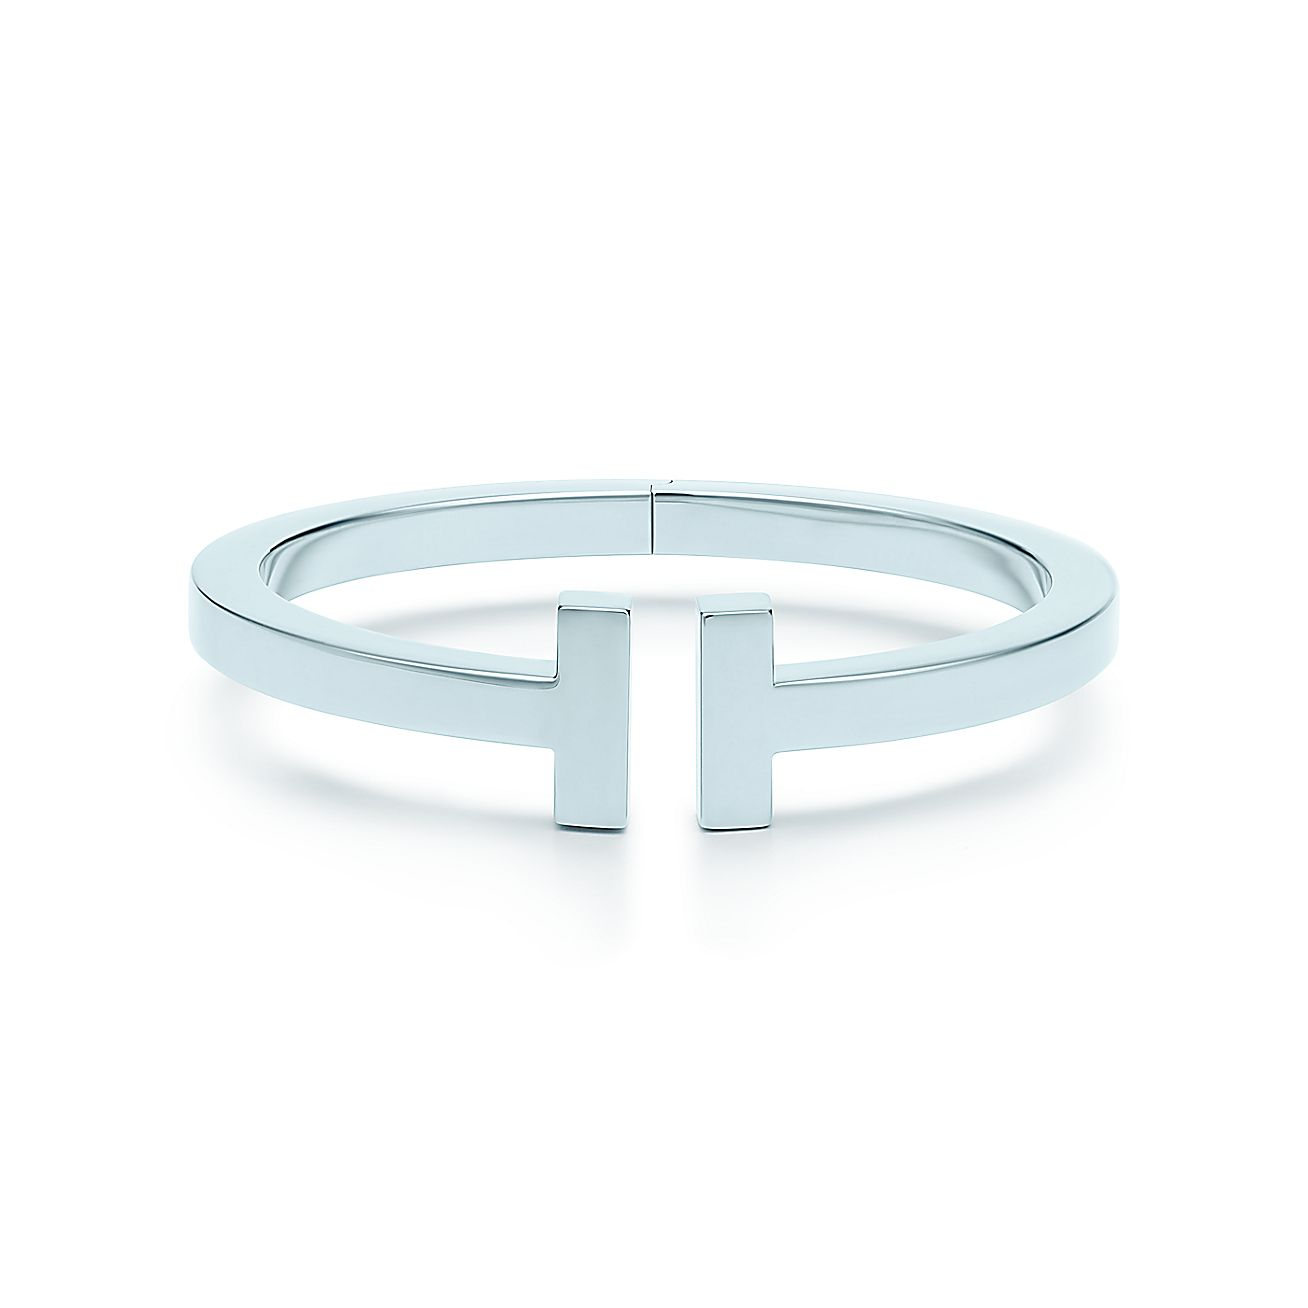 Tiffany T square bracelet in sterling silver, large. | Tiffany & Co.